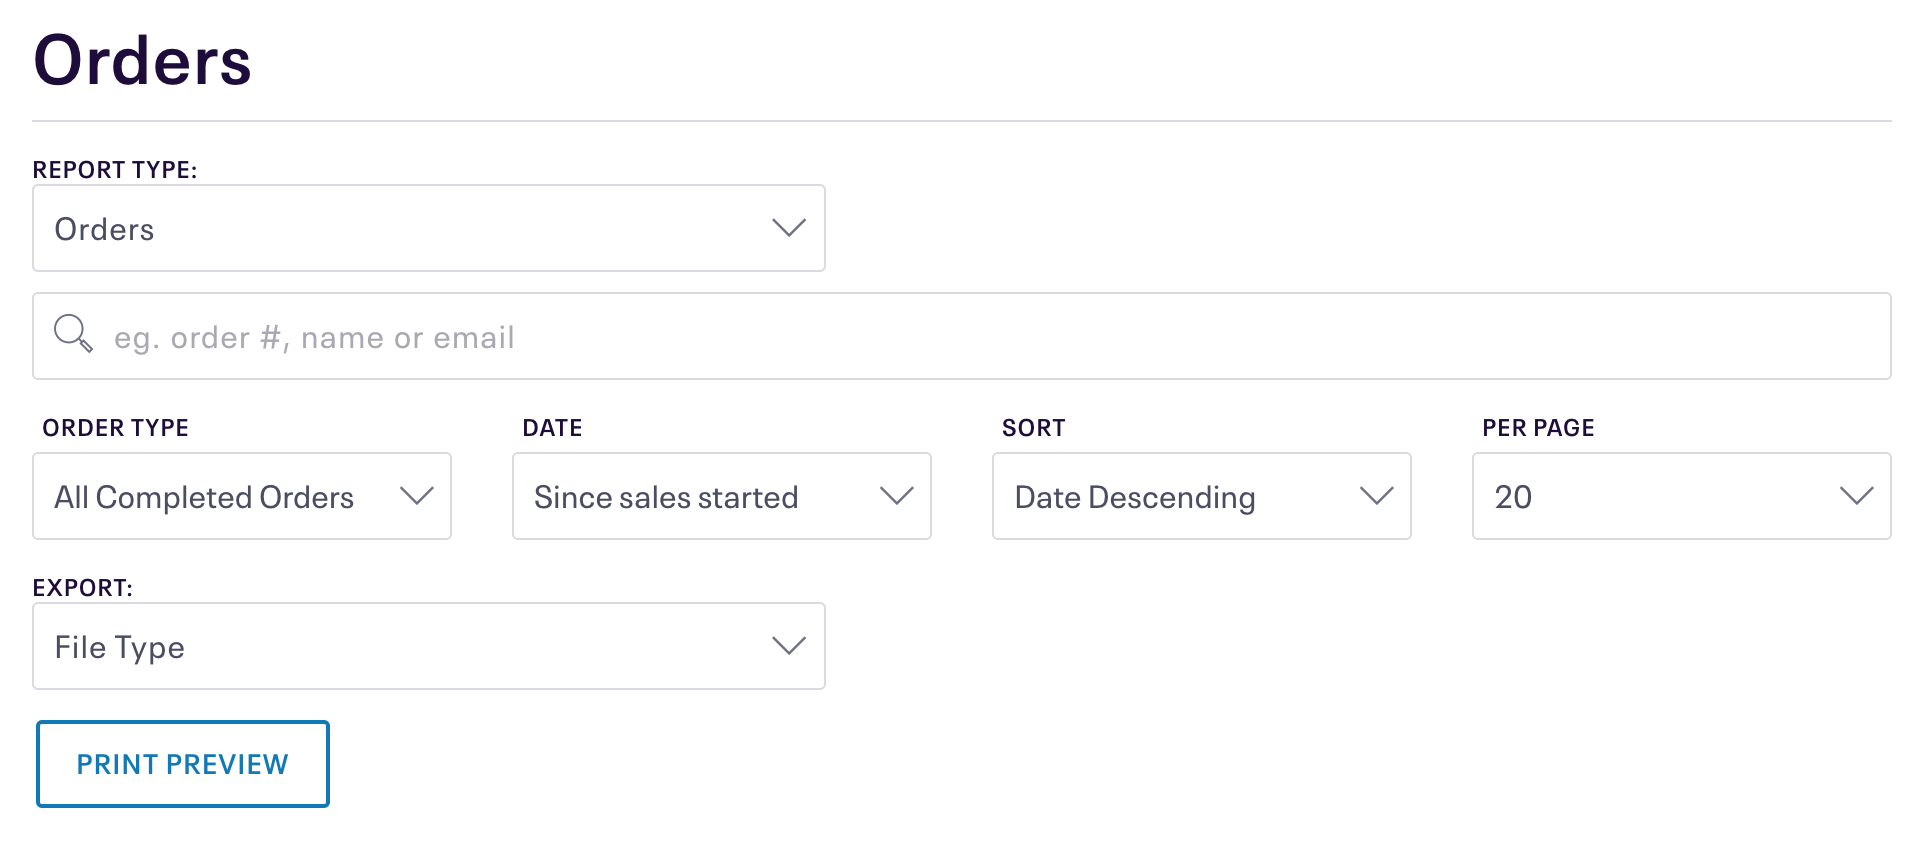 You can search orders by date range, order type, and keywords. You can also export this information.